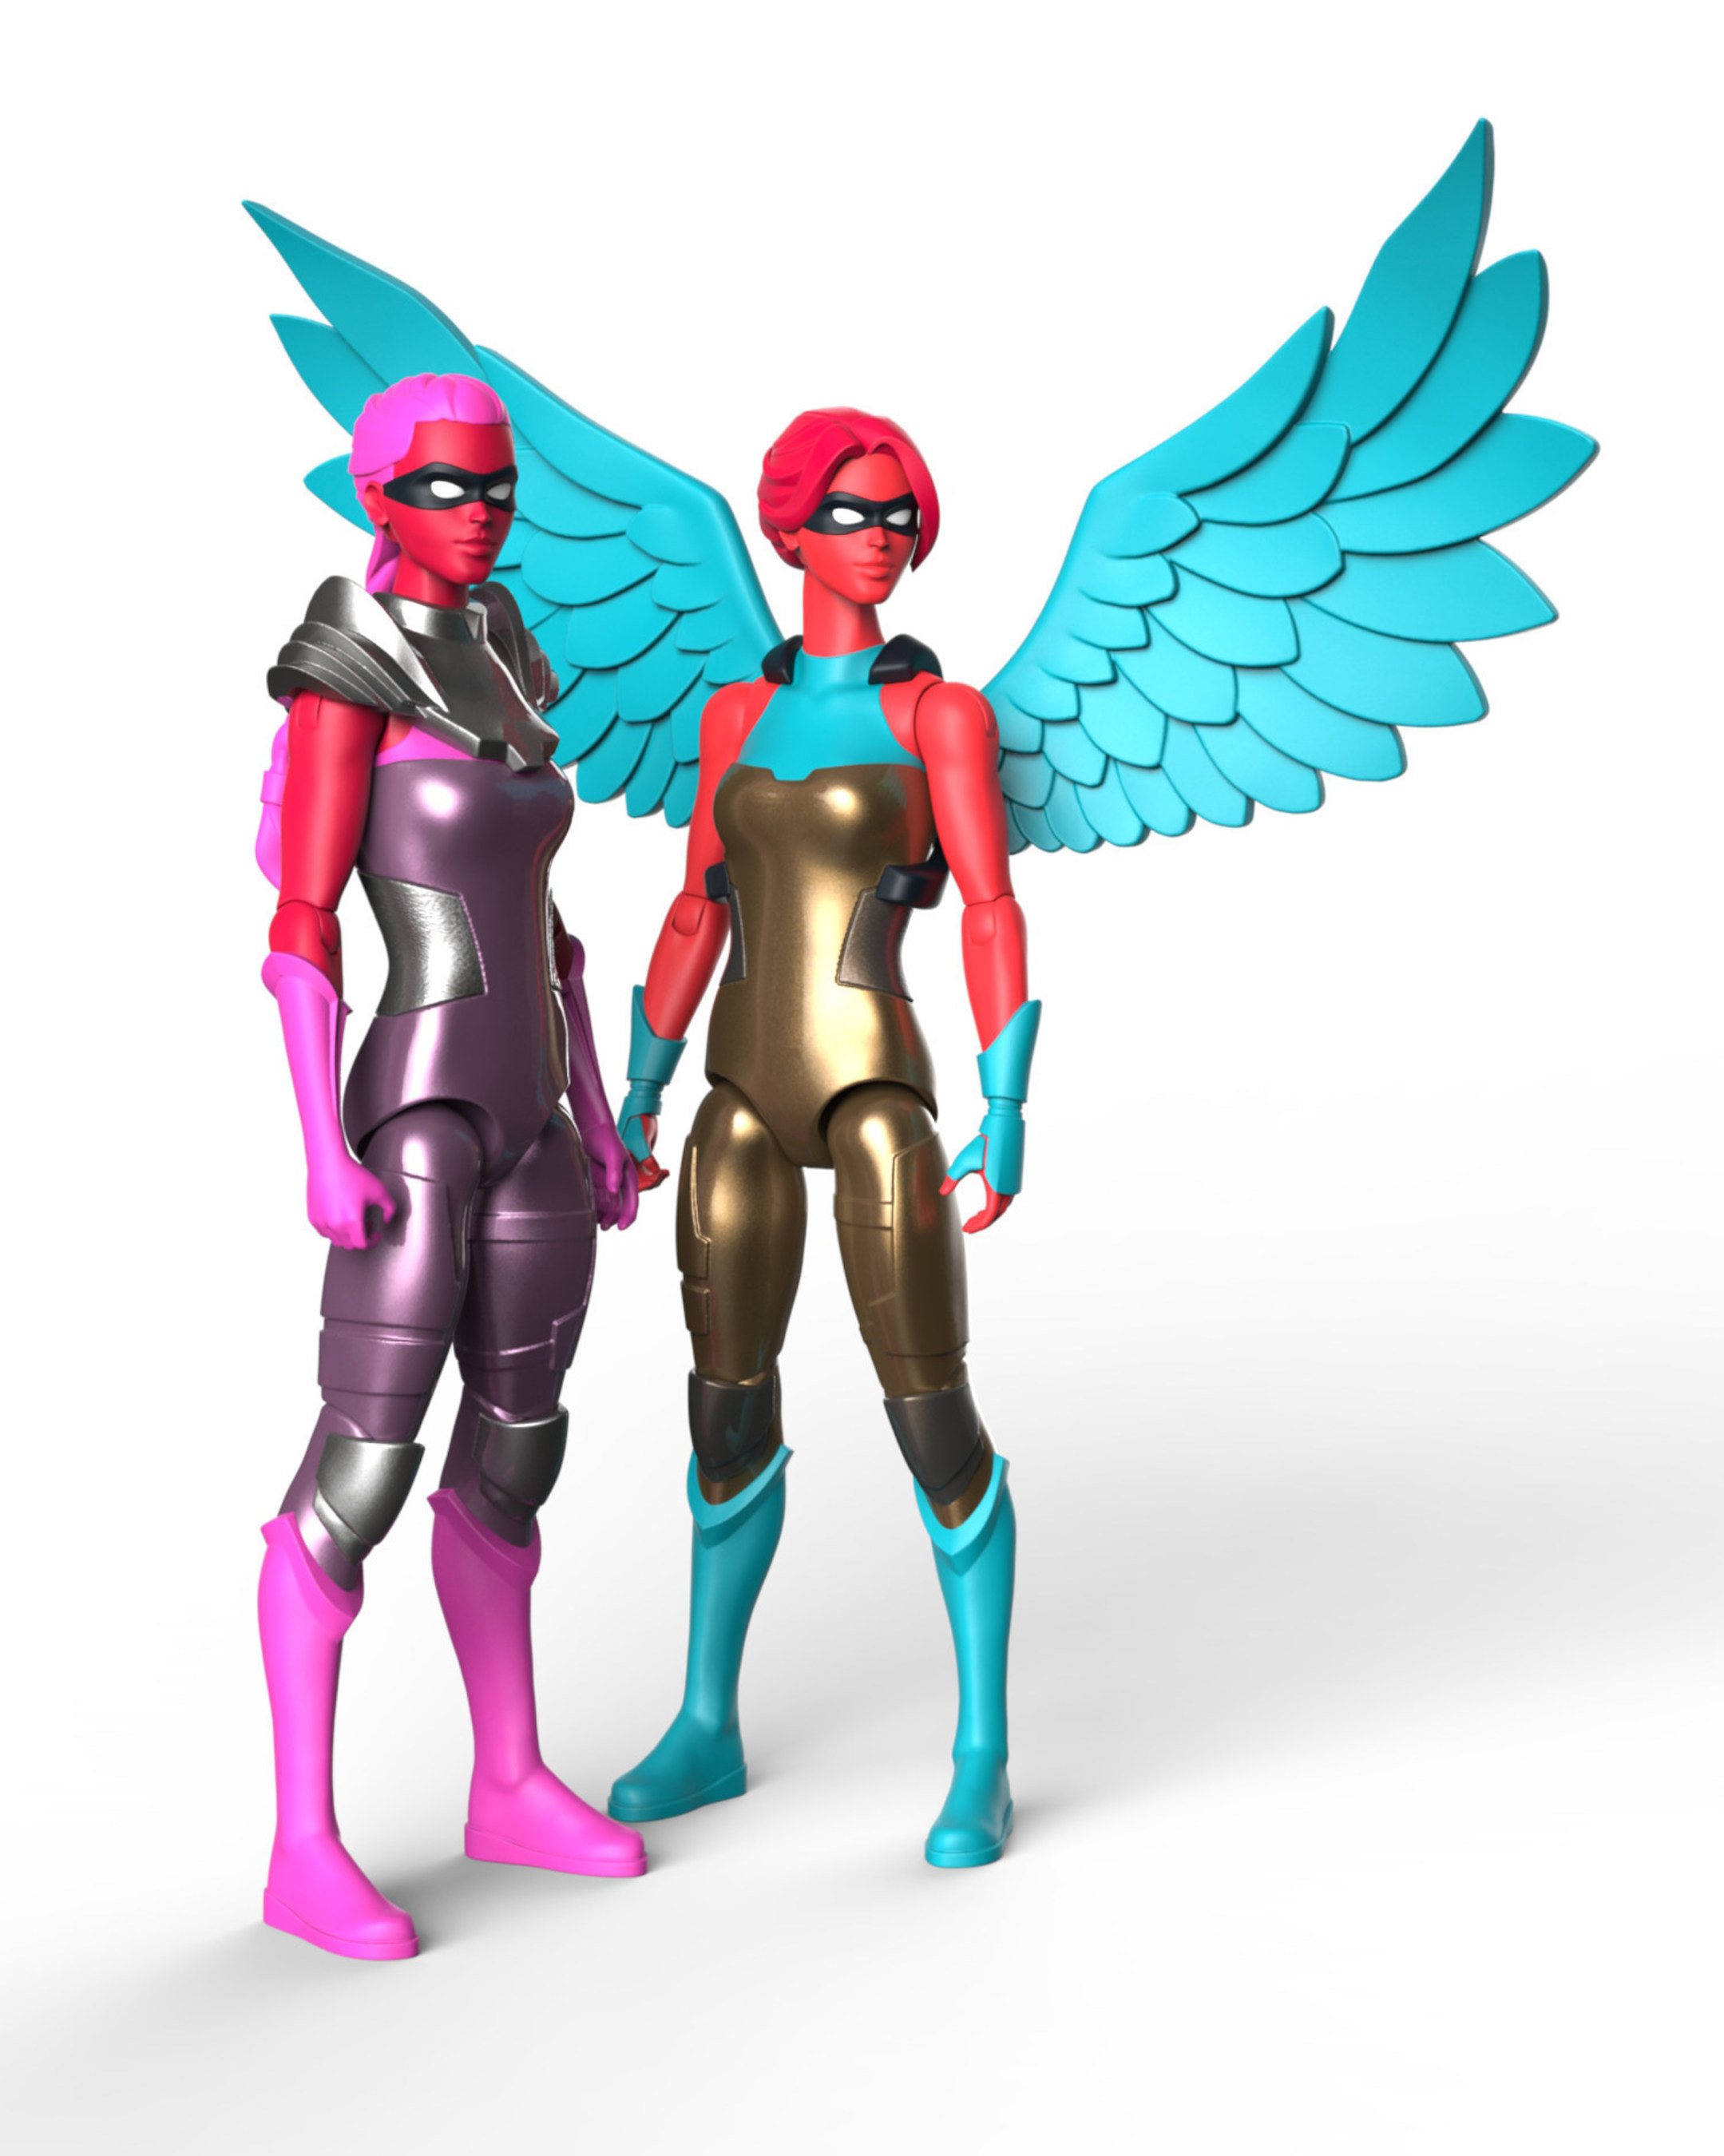 Limited-edition female action figures by IAmElemental: Pink Bravery, a metallic pink colorway benefiting breast cancer researchat the UNC Lineberger Comprehensive Cancer Center; and Gold Honesty, a metallic gold colorway exclusively for New York Comic Con attendees.  For more information, visit www.iamelemental.com.